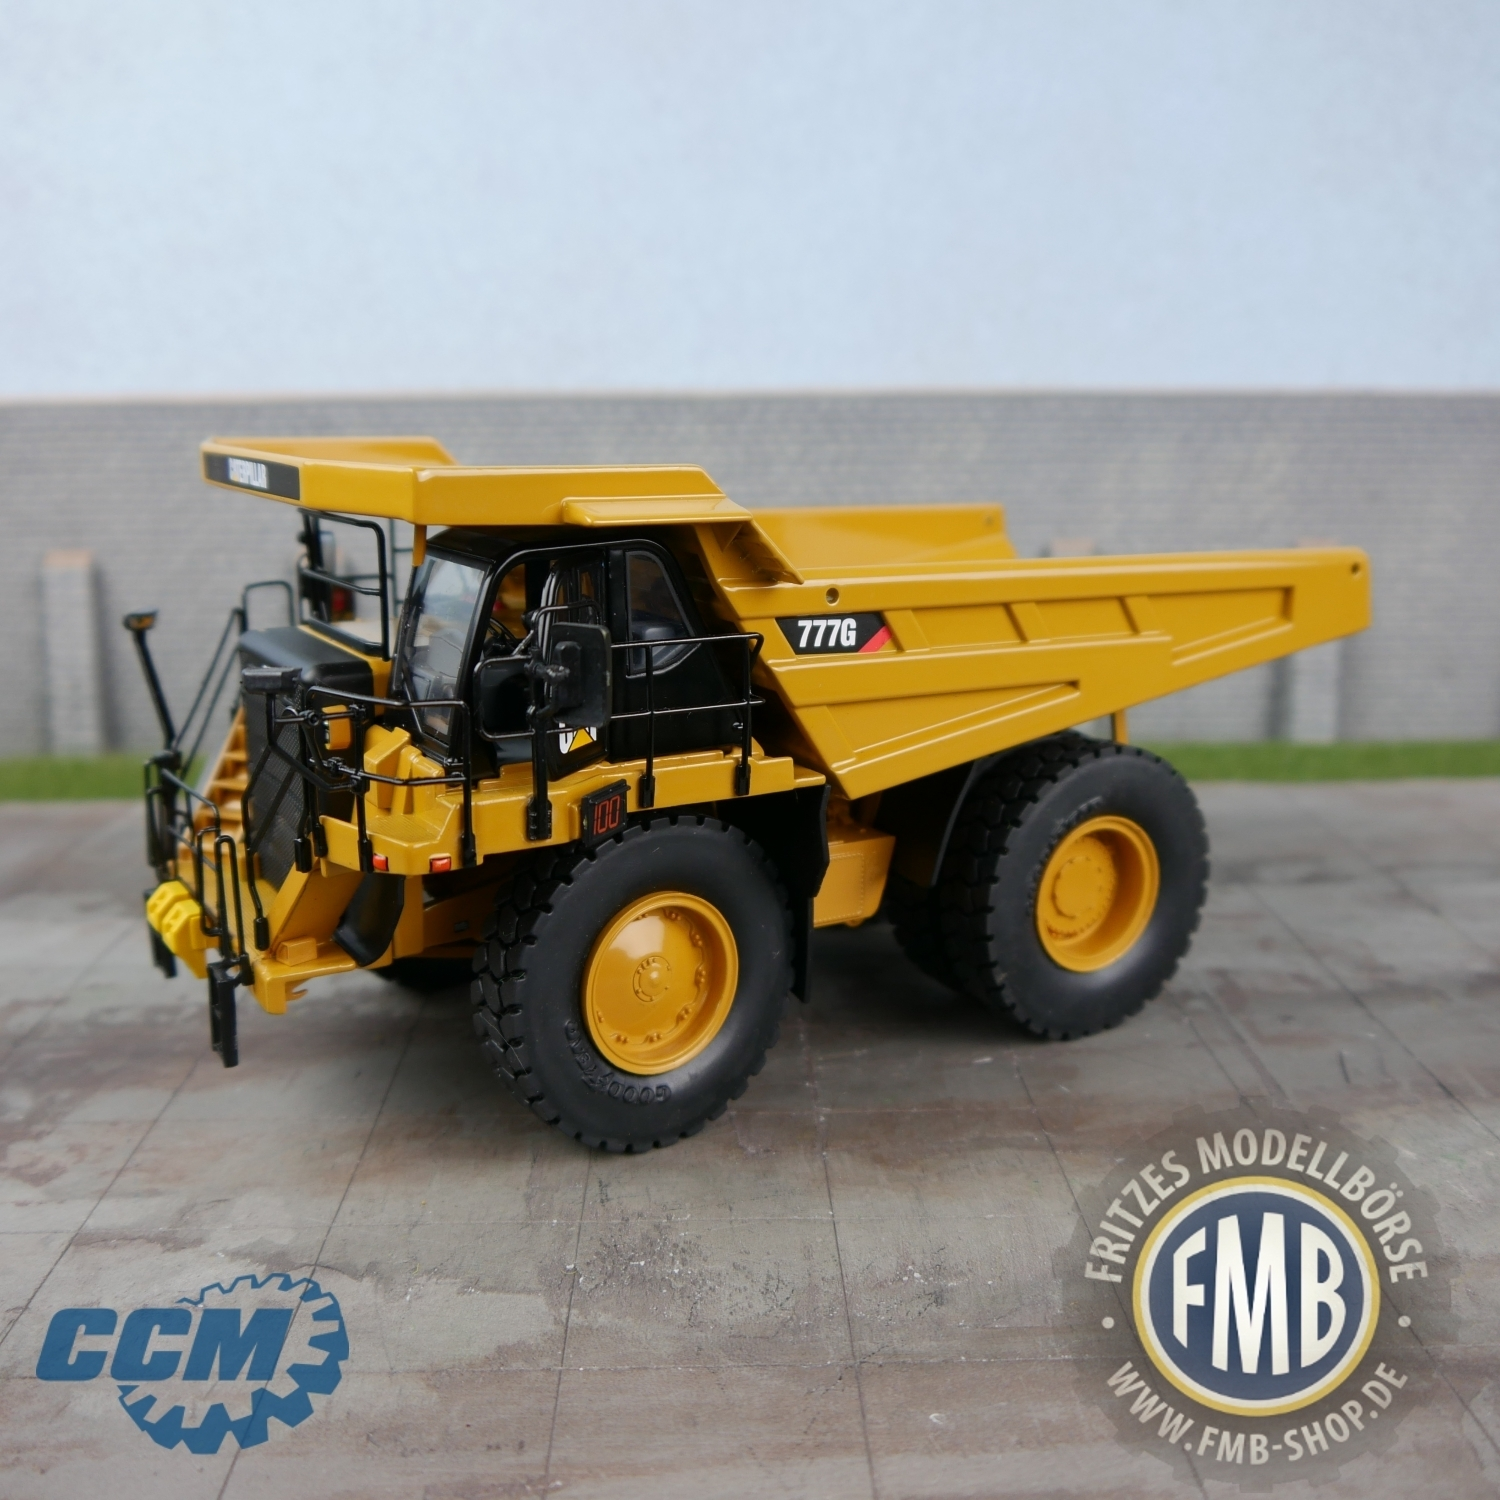 42180 - CCM - CAT 777G Off-Highway Truck / Dumper - 1:48